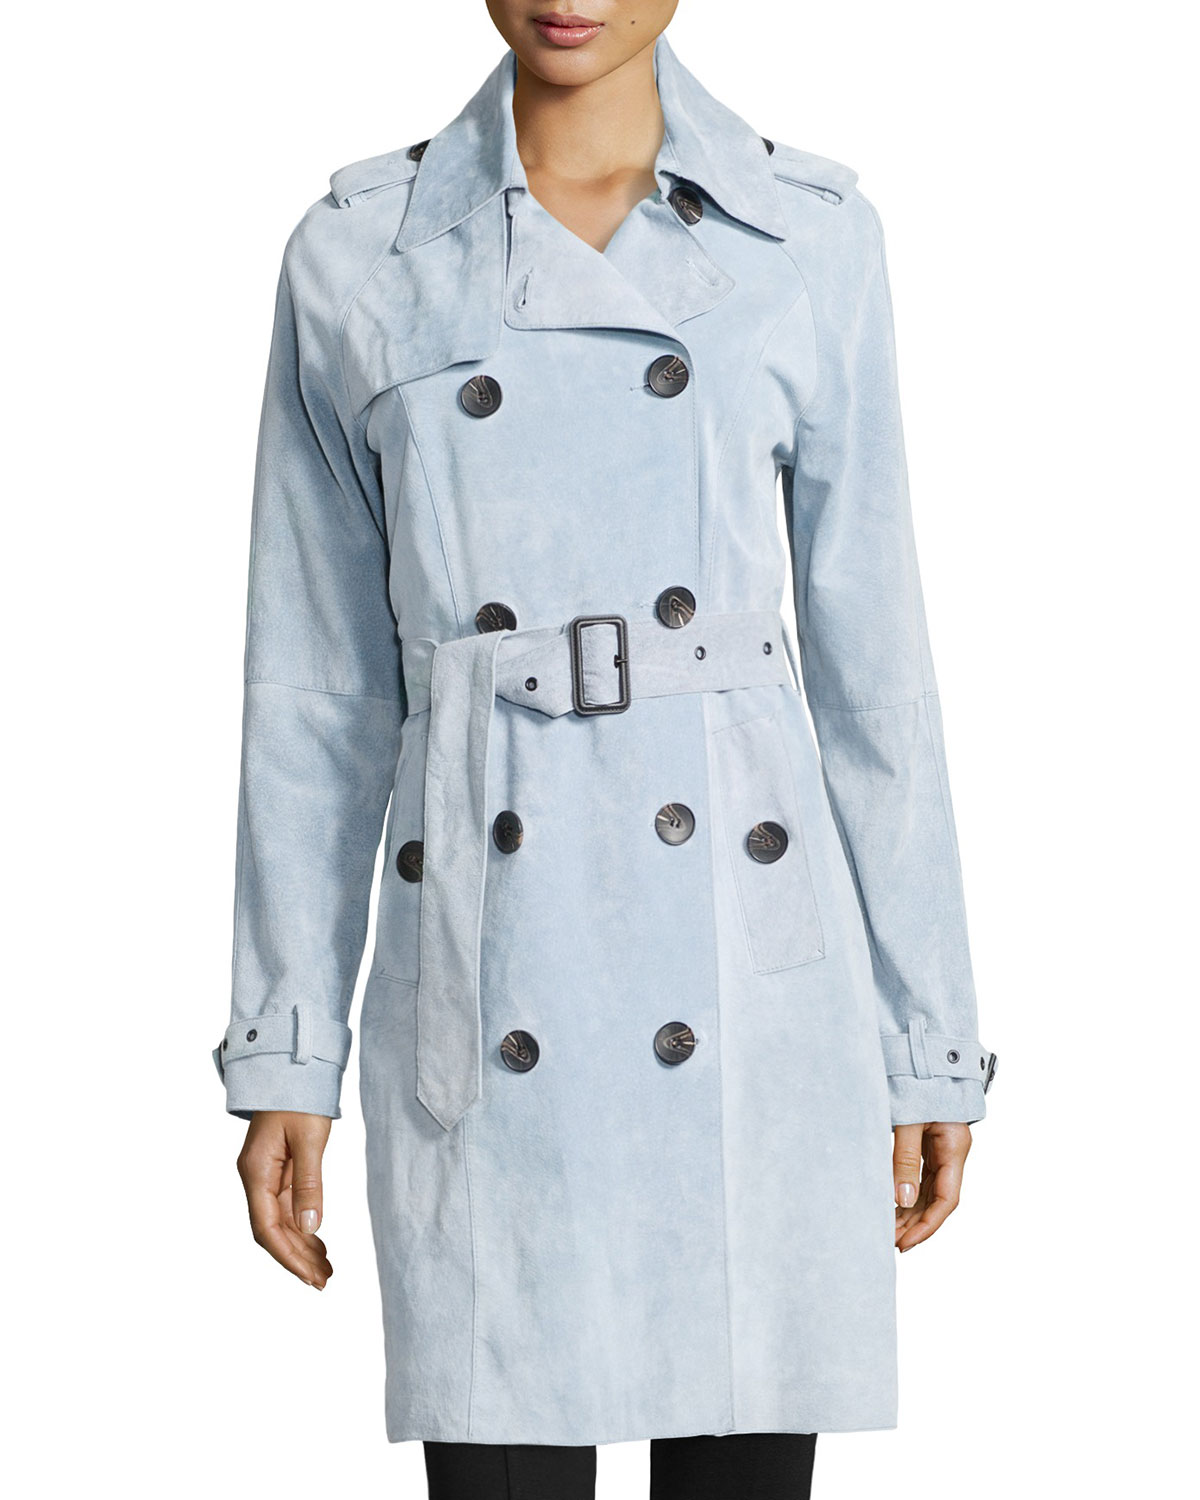 Suede Double-Breasted Trench Coat, Size: LARGE (12-14), LIGHT BLUE - Neiman Marcus